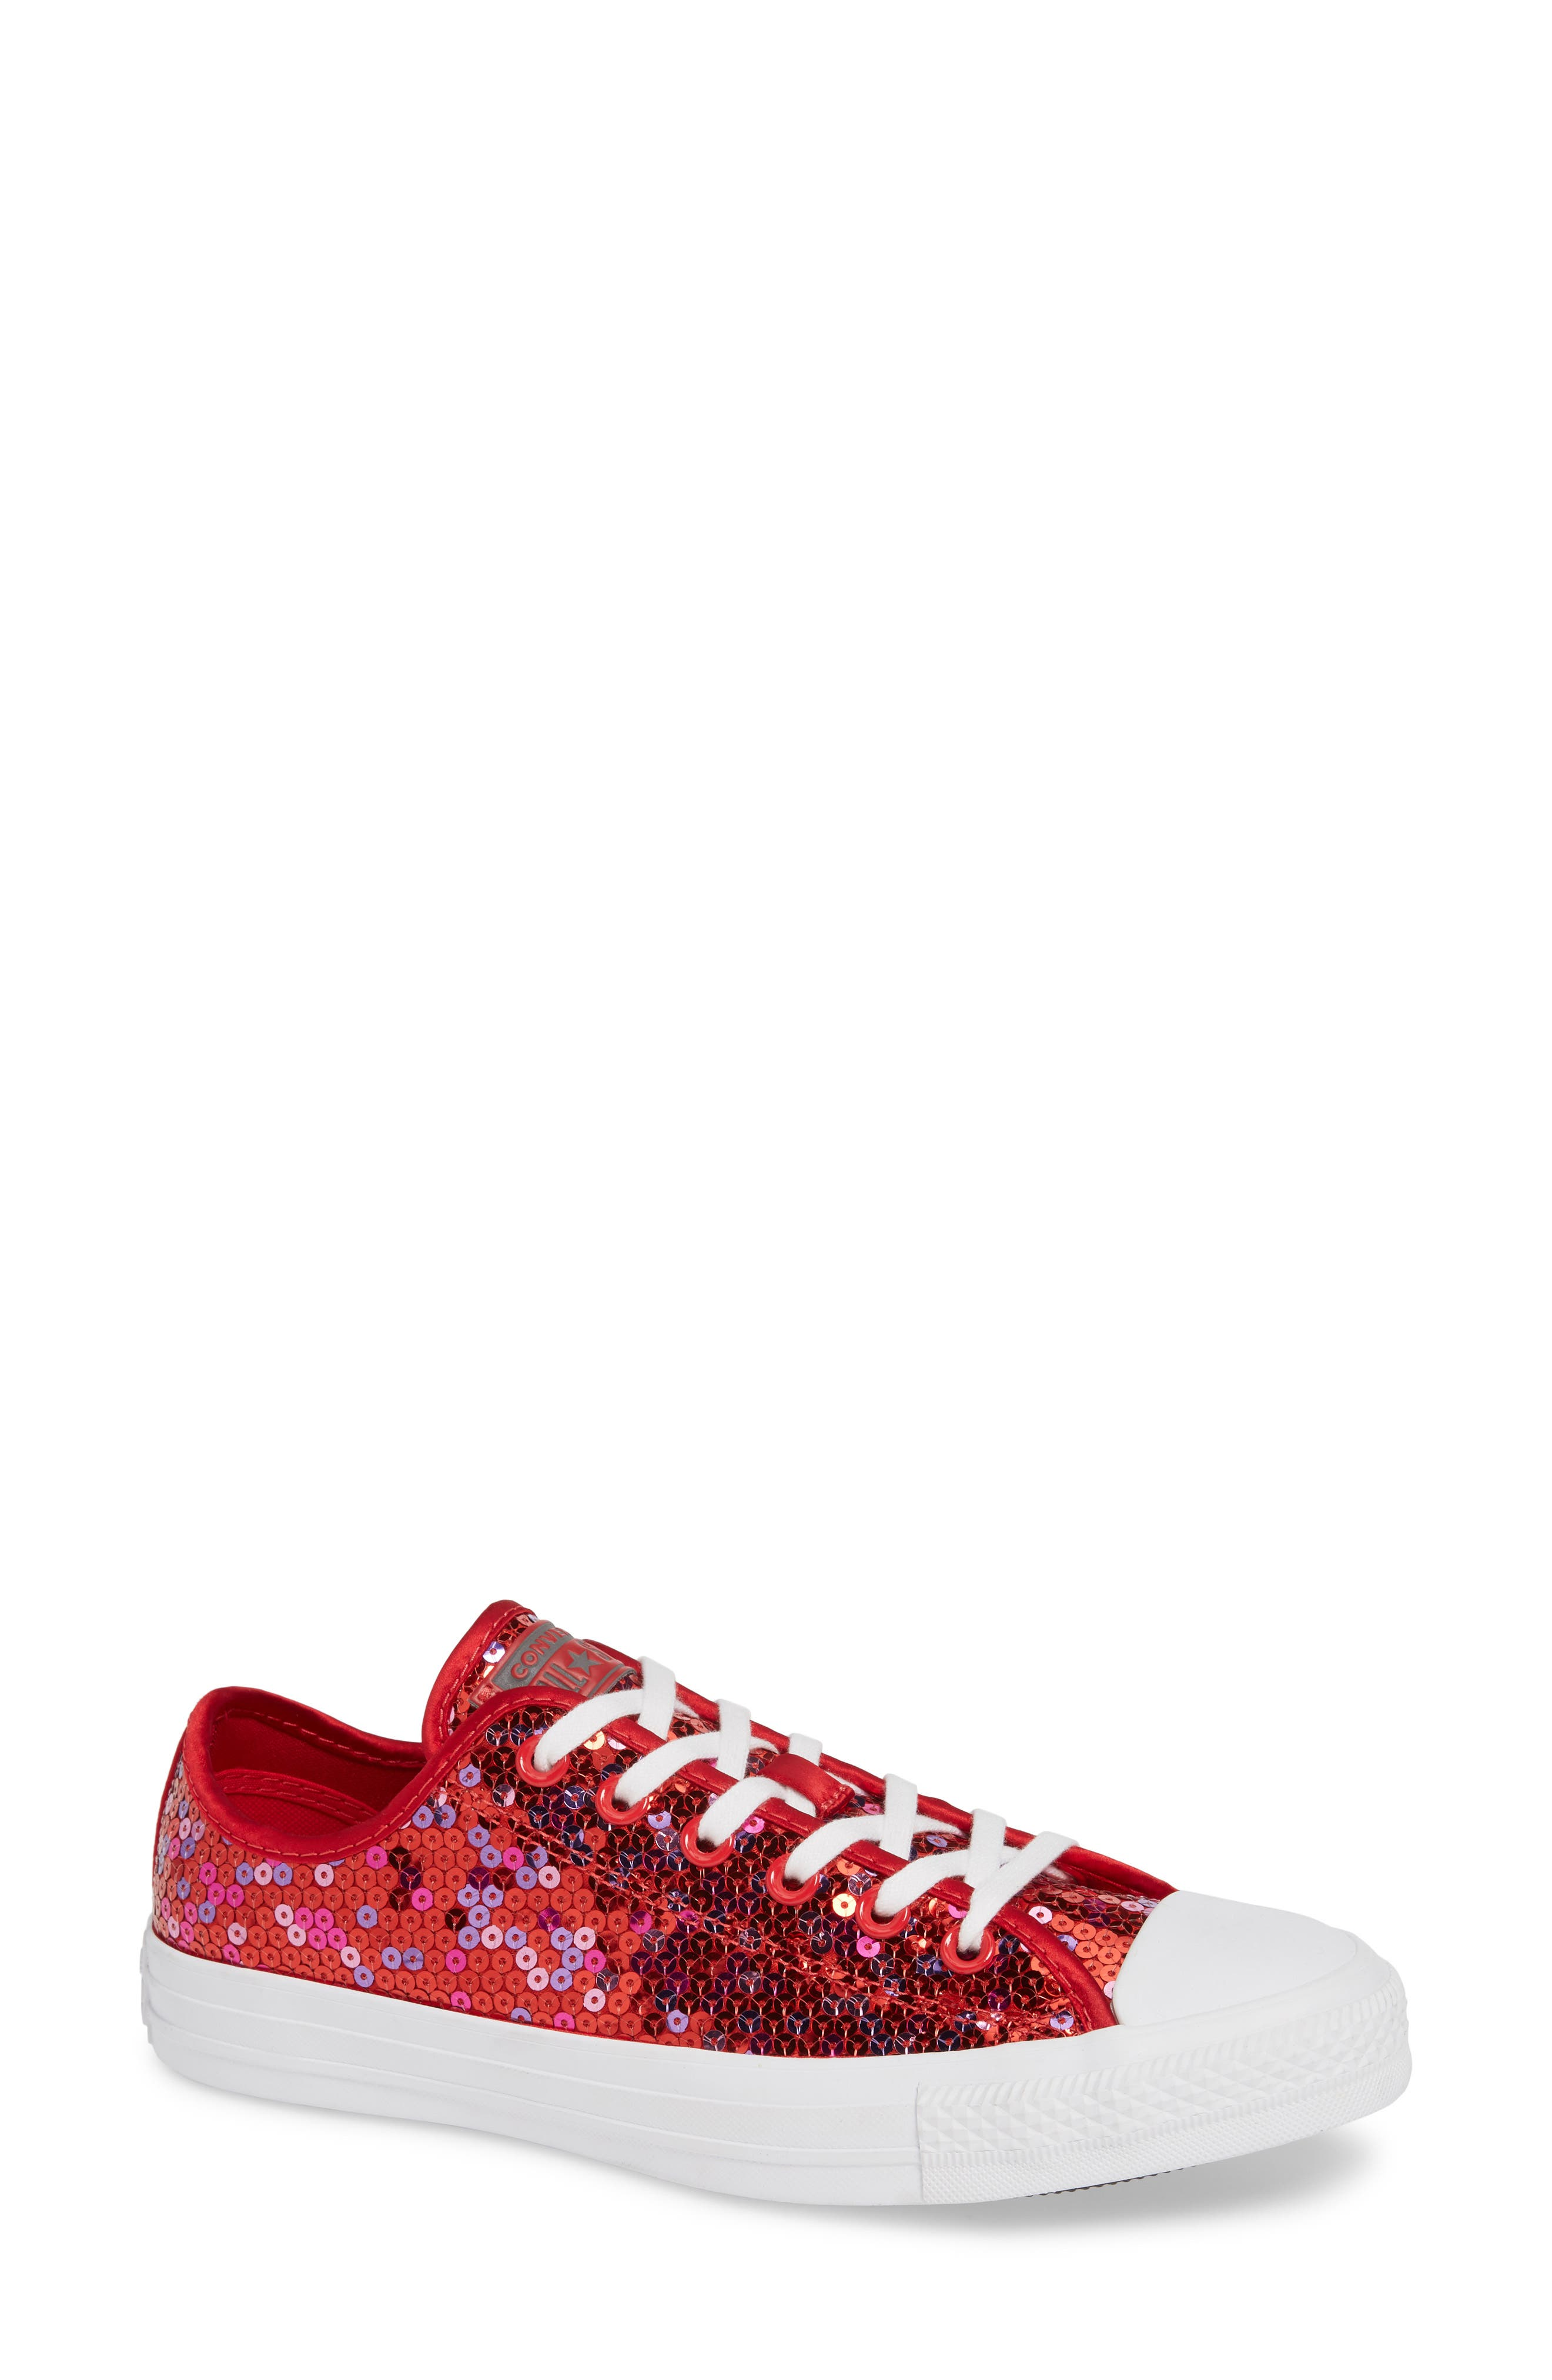 Chuck Taylor<sup>®</sup> All Star<sup>®</sup> Sequin Low Top Sneaker,                             Main thumbnail 1, color,                             RED CHERRY SEQUINS